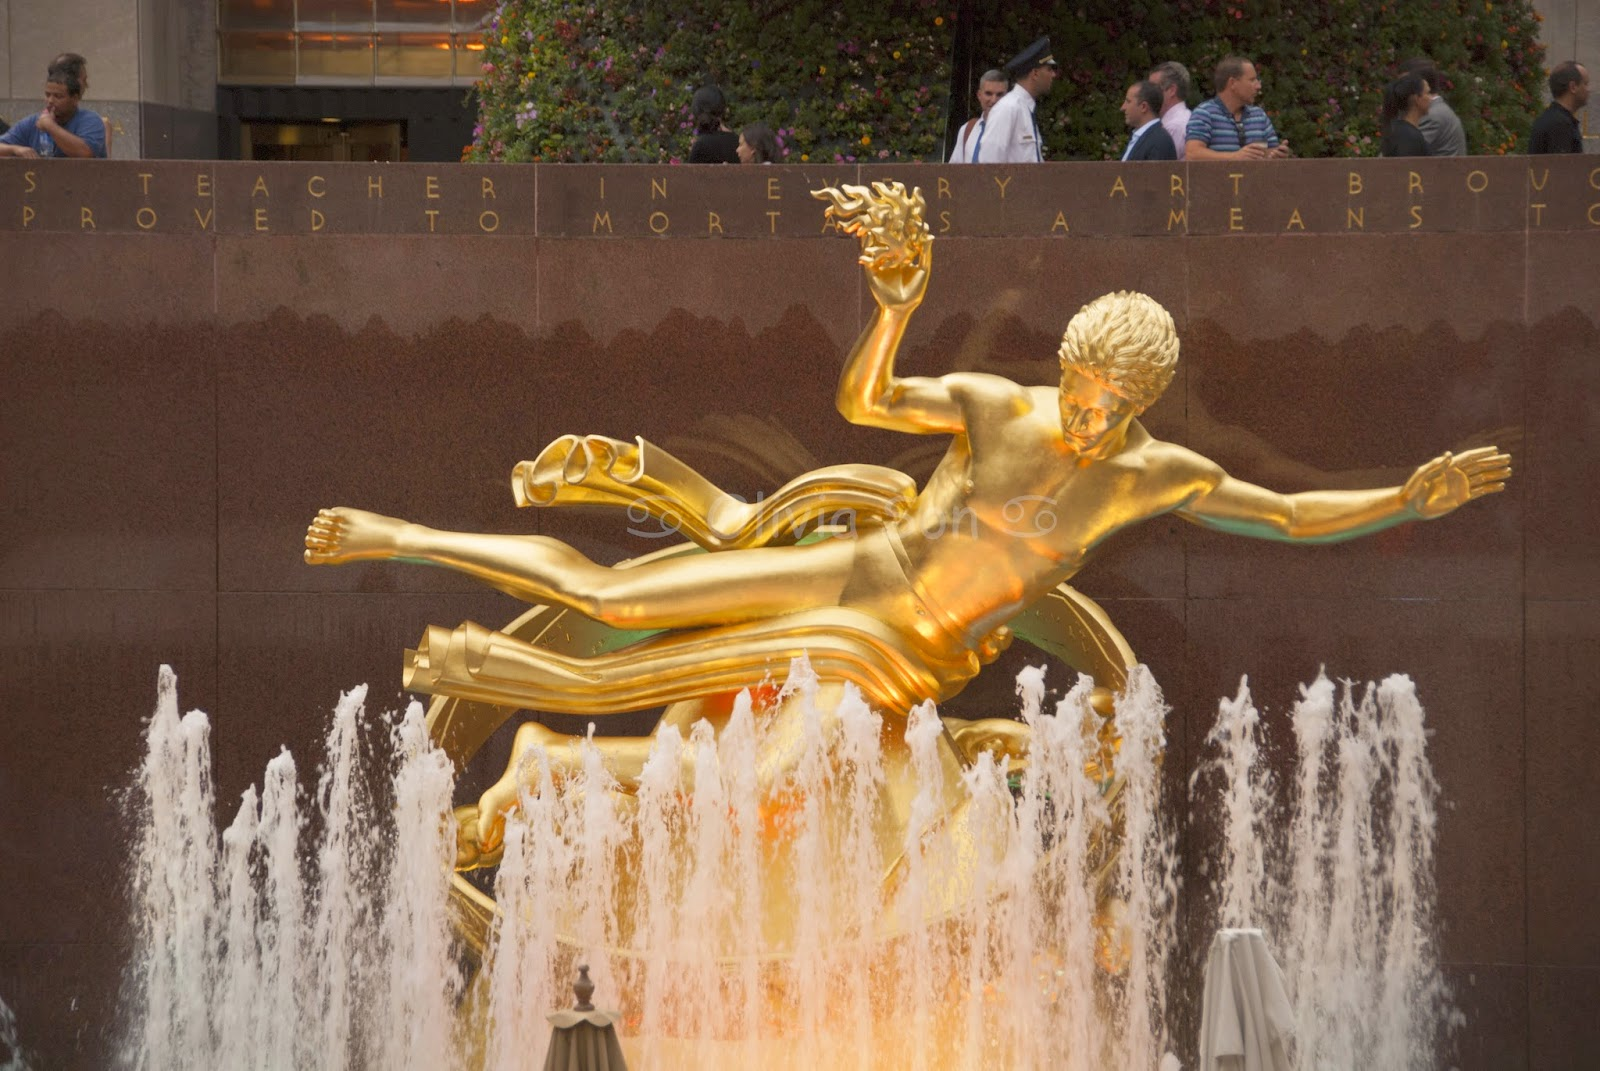 rockefeller center, new york city, usa